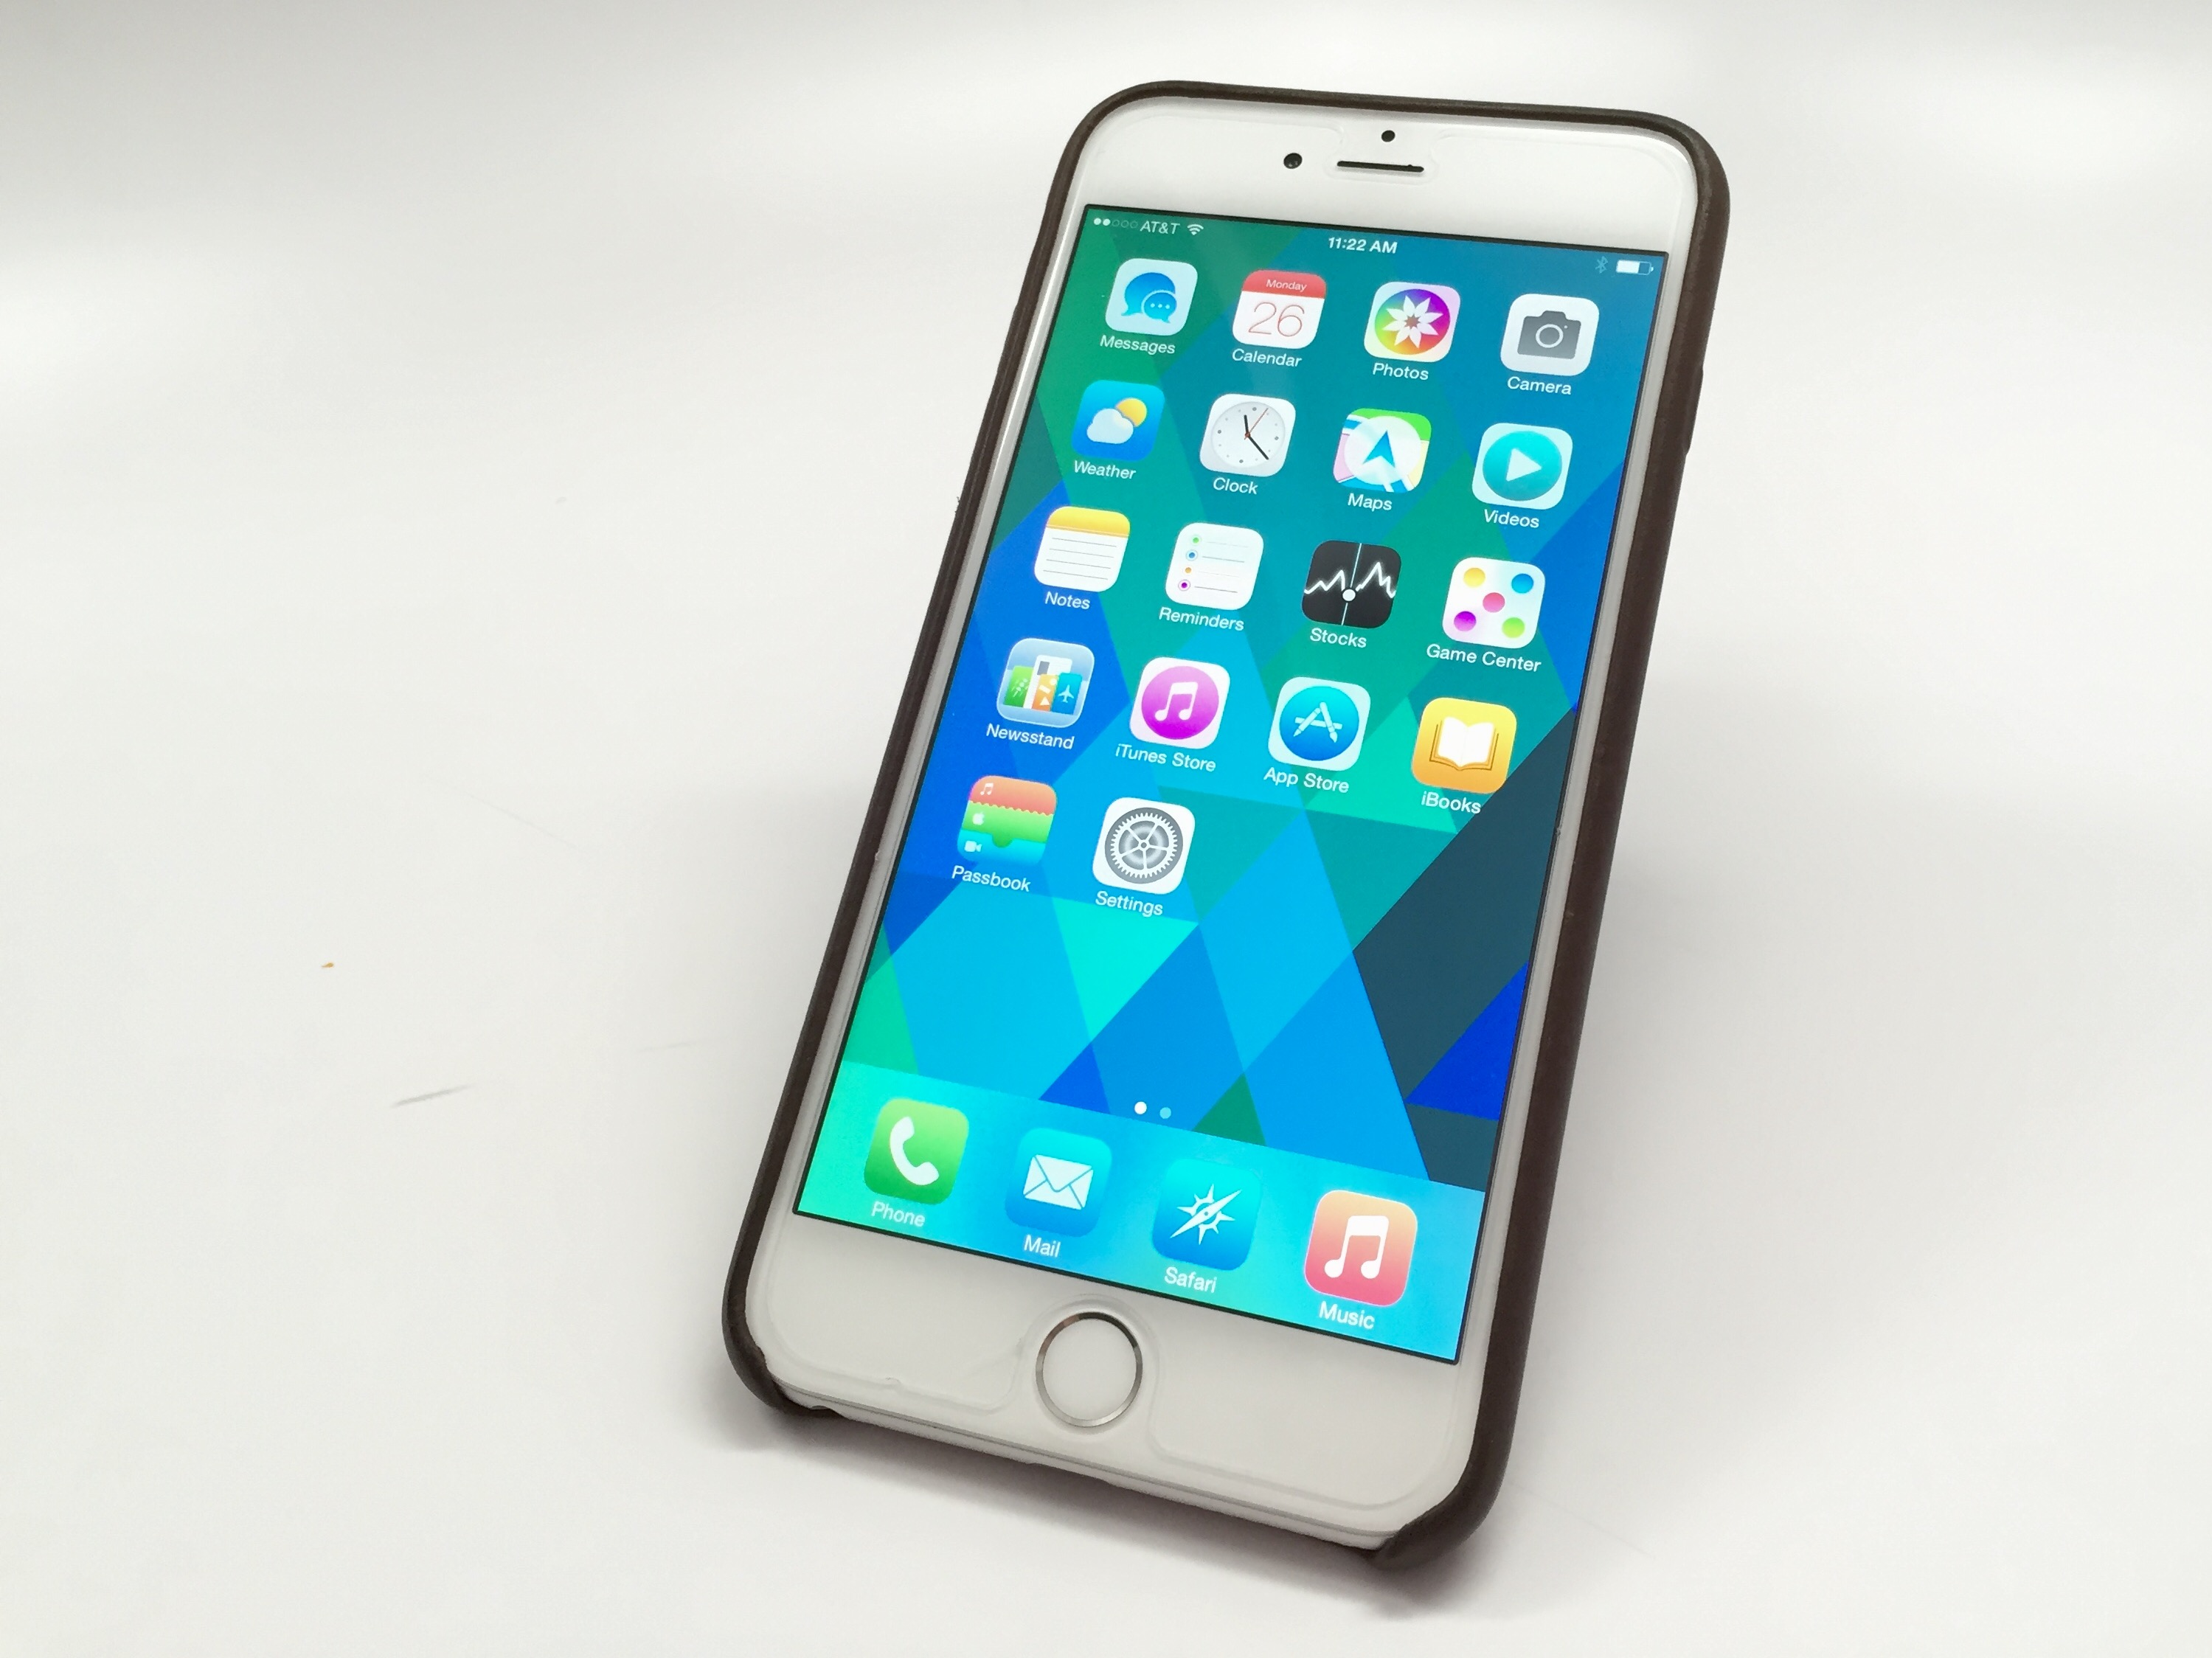 These are the best iOS 8 themes you can find and install from Cydia.